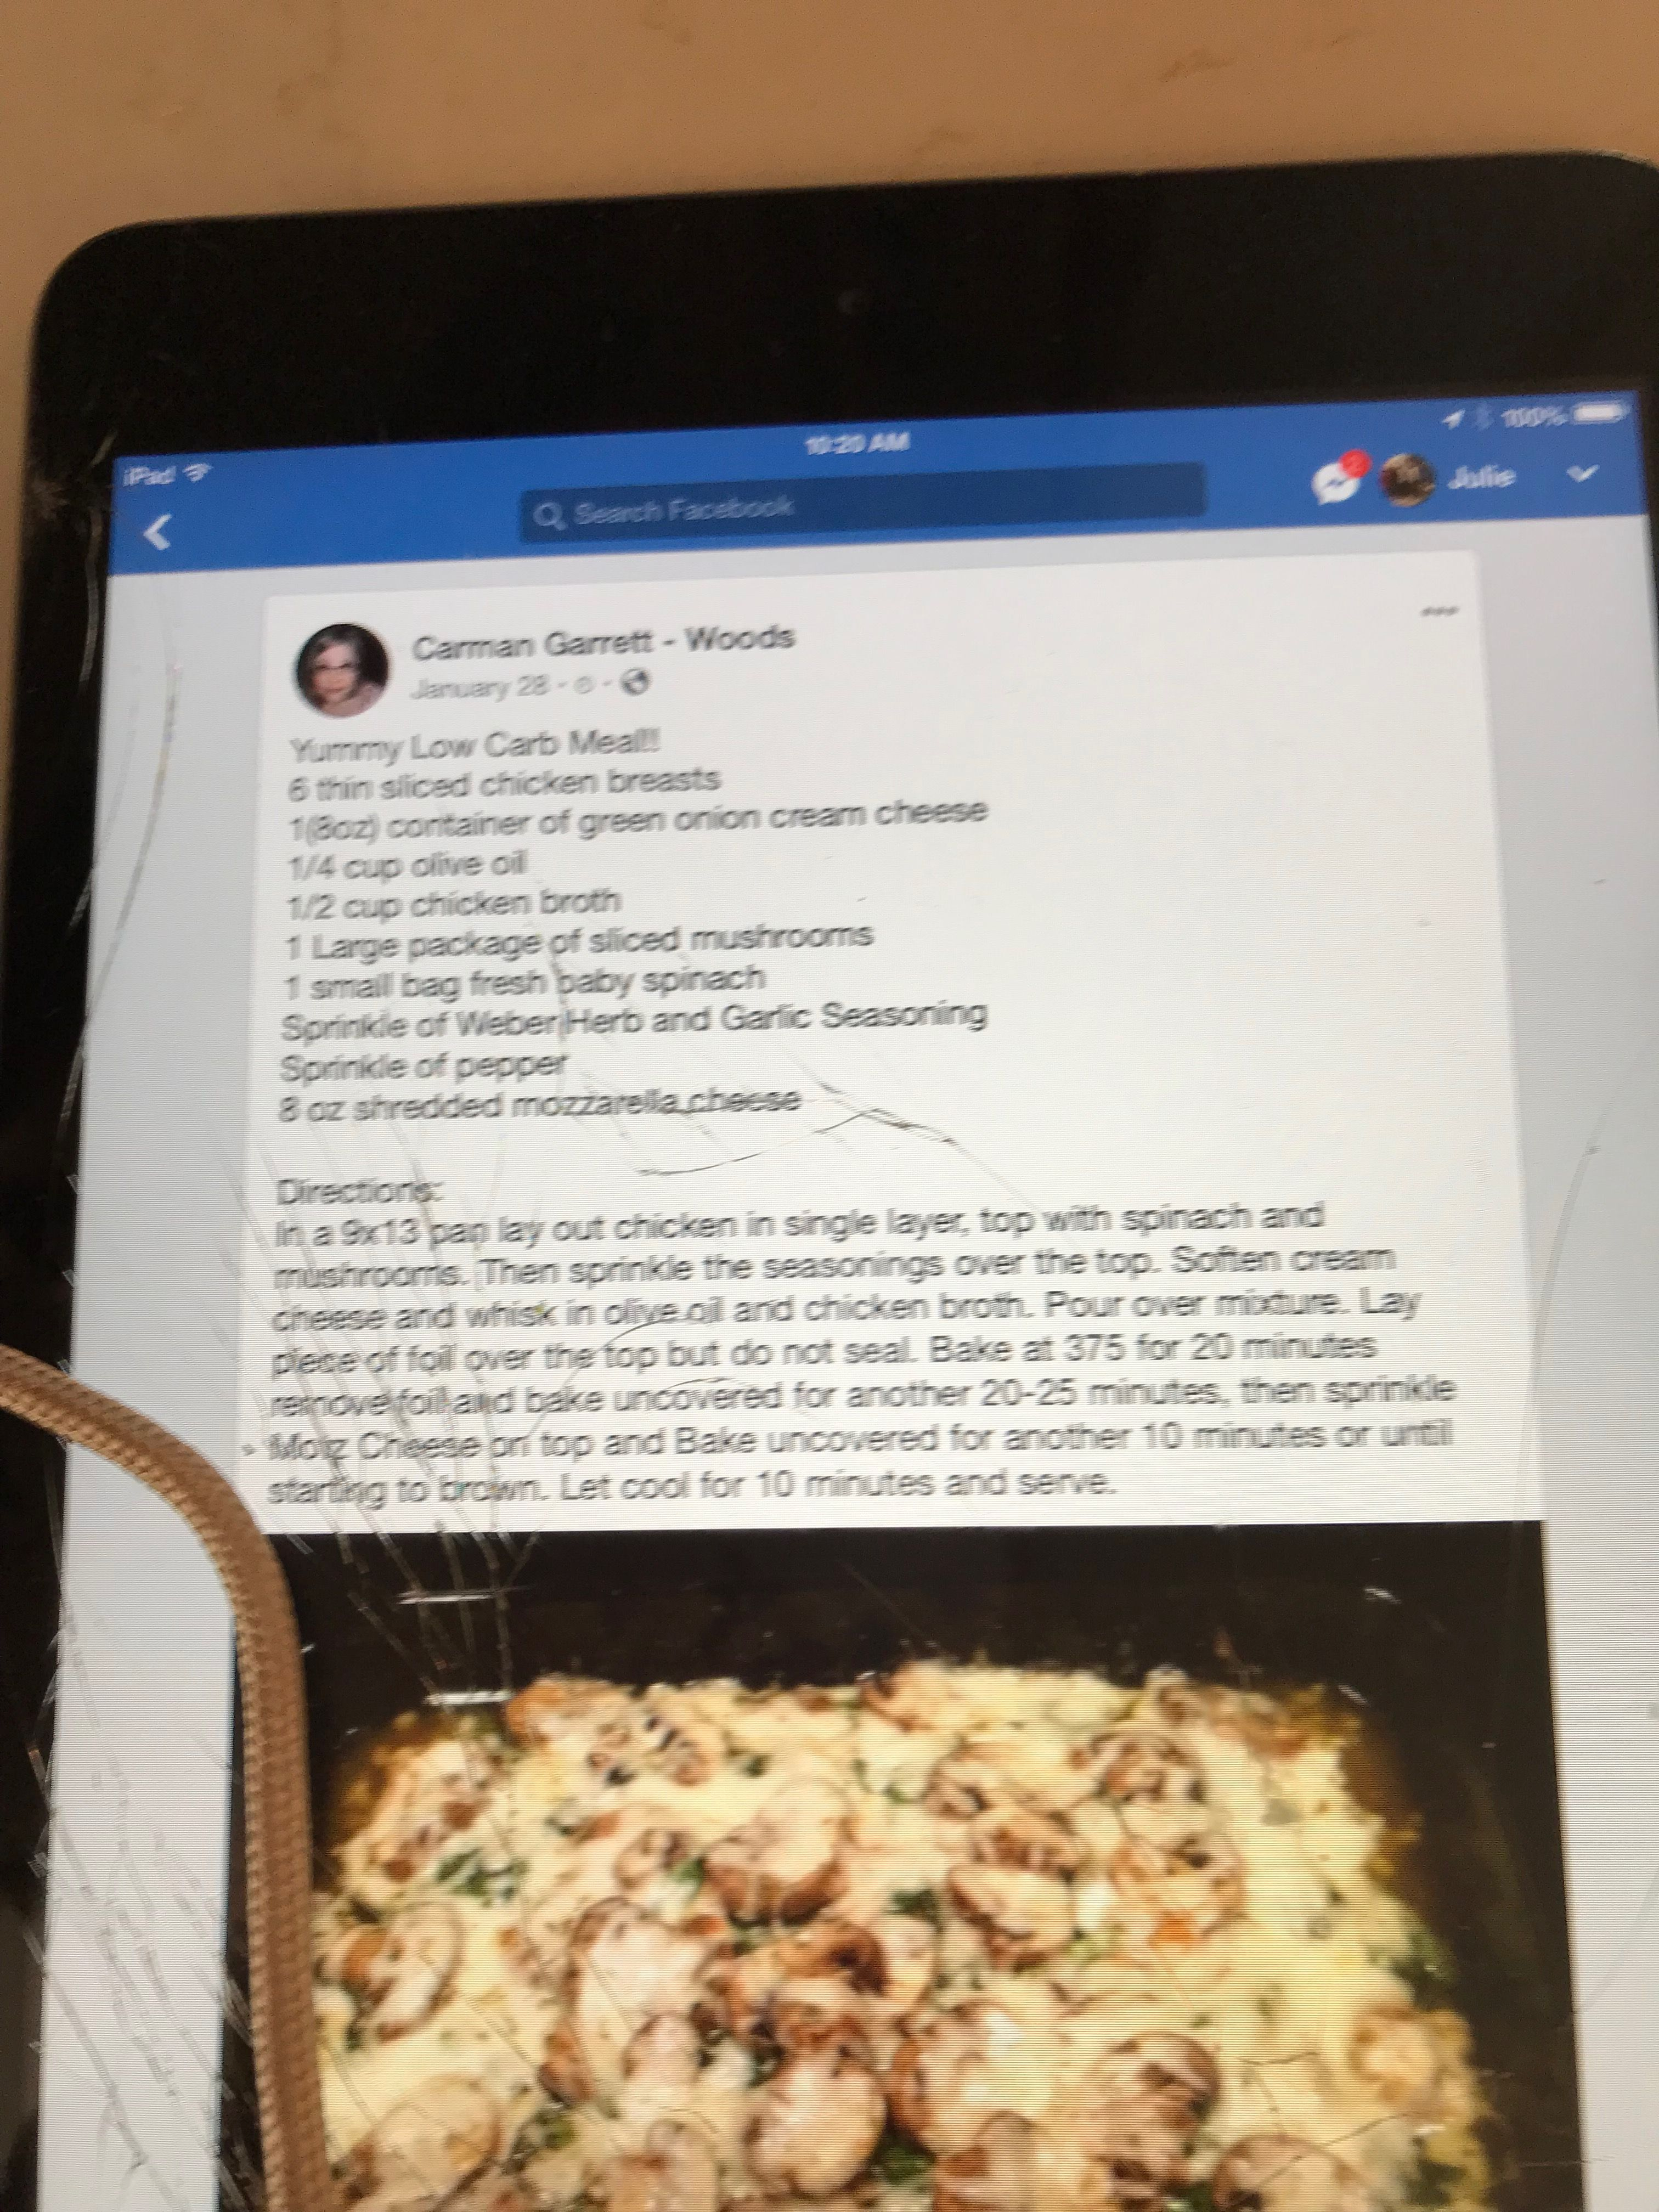 Pin by Julie on Recipes in 2019 | Food, Recipes, Breakfast